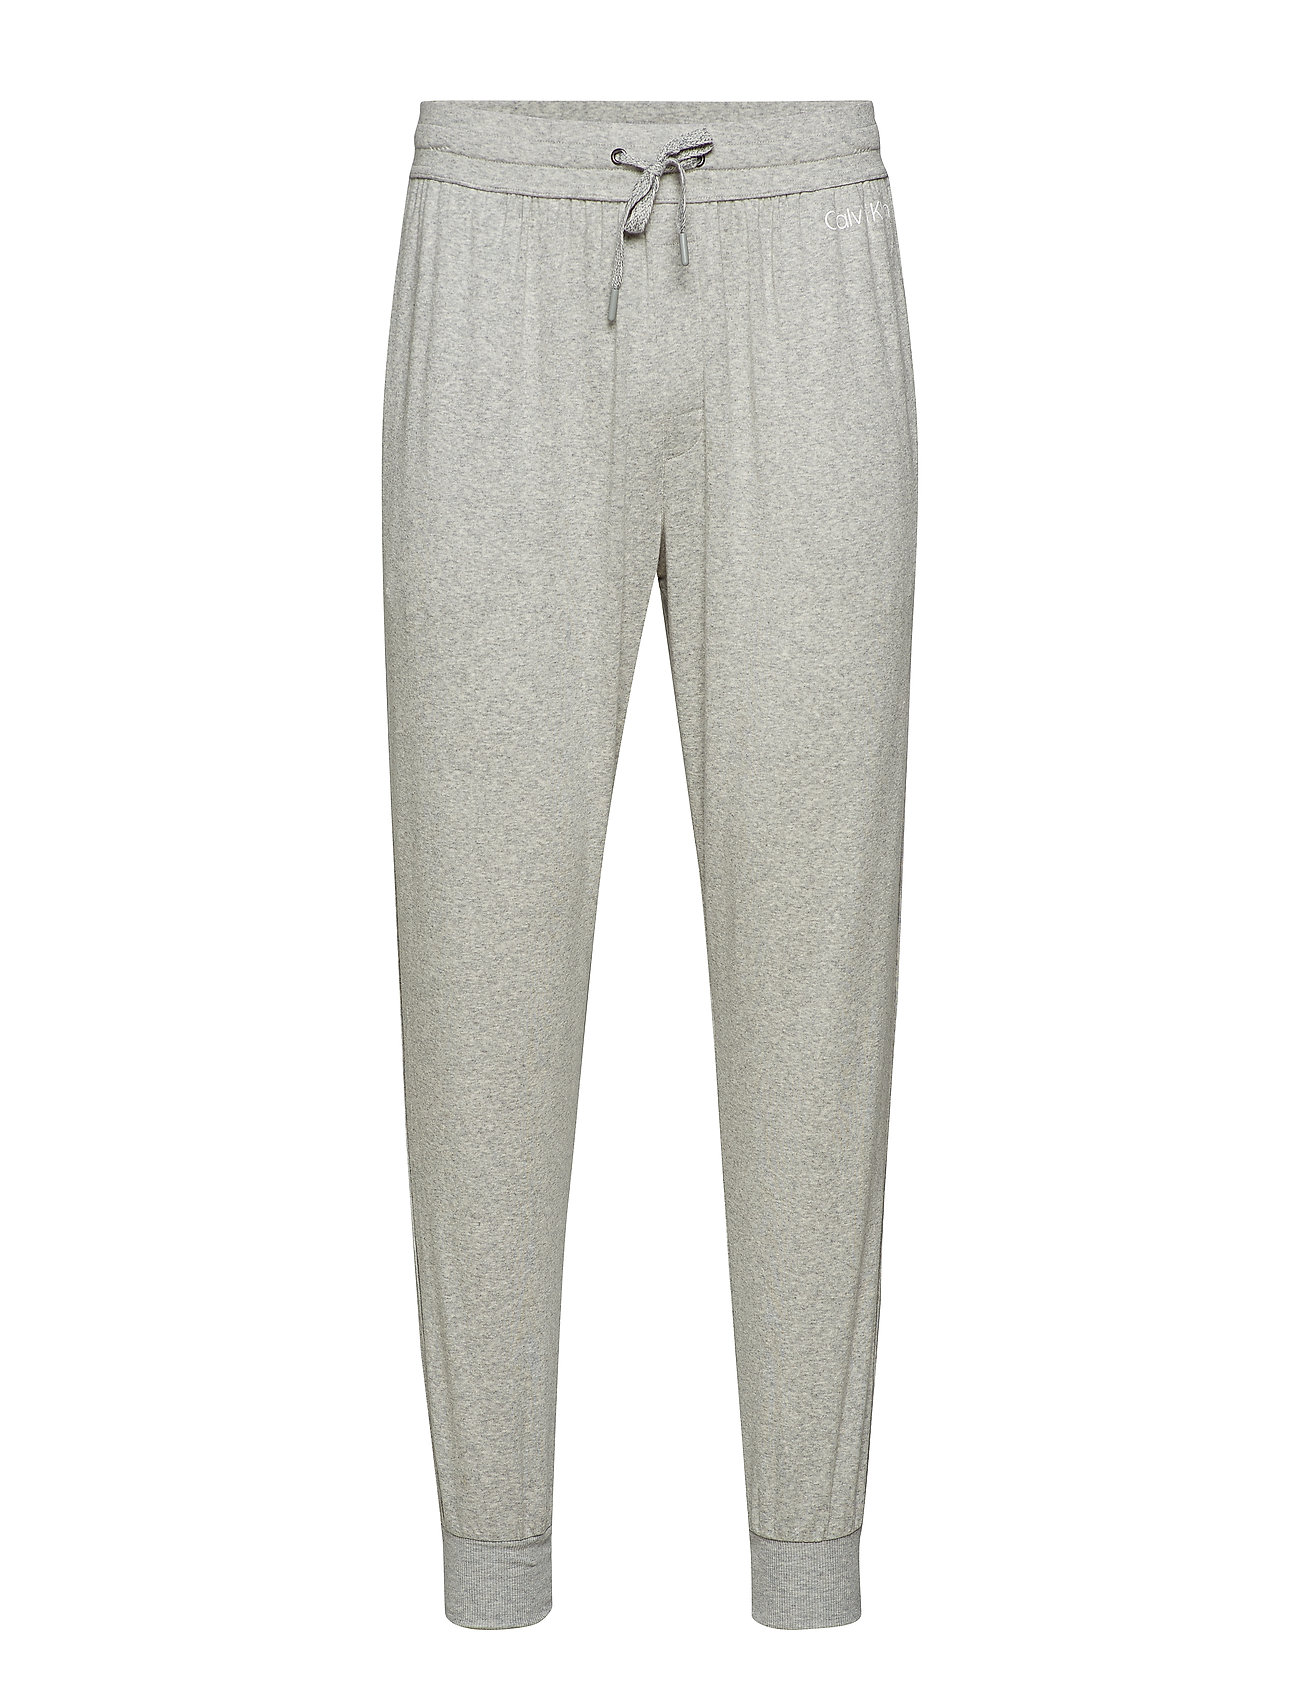 Calvin Klein JOGGER - GREY HEATHER